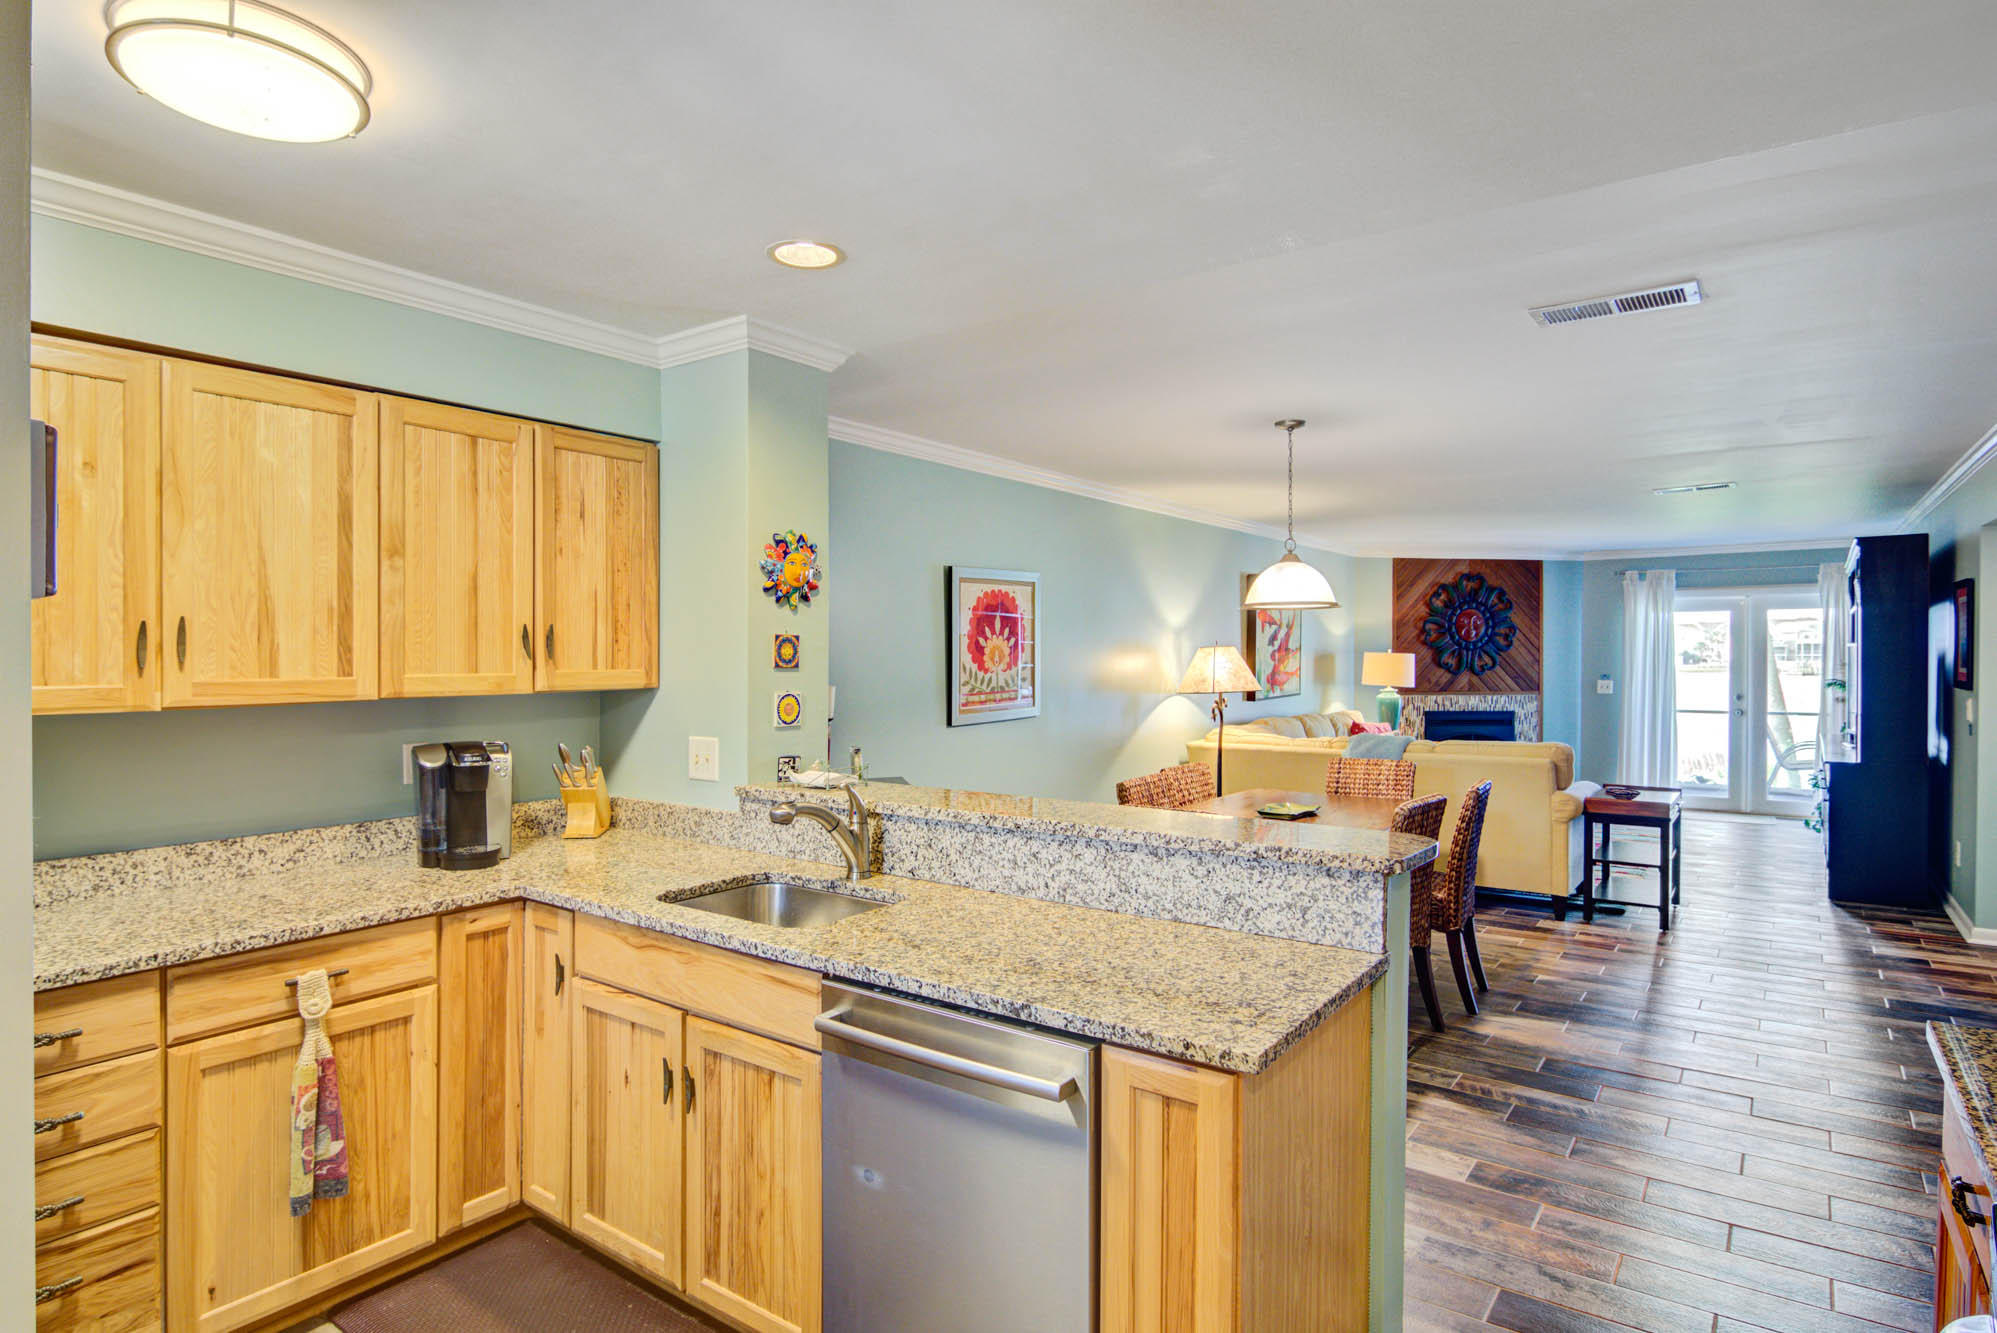 Mariners Cay Homes For Sale - 19 Mariners Cay, Folly Beach, SC - 14